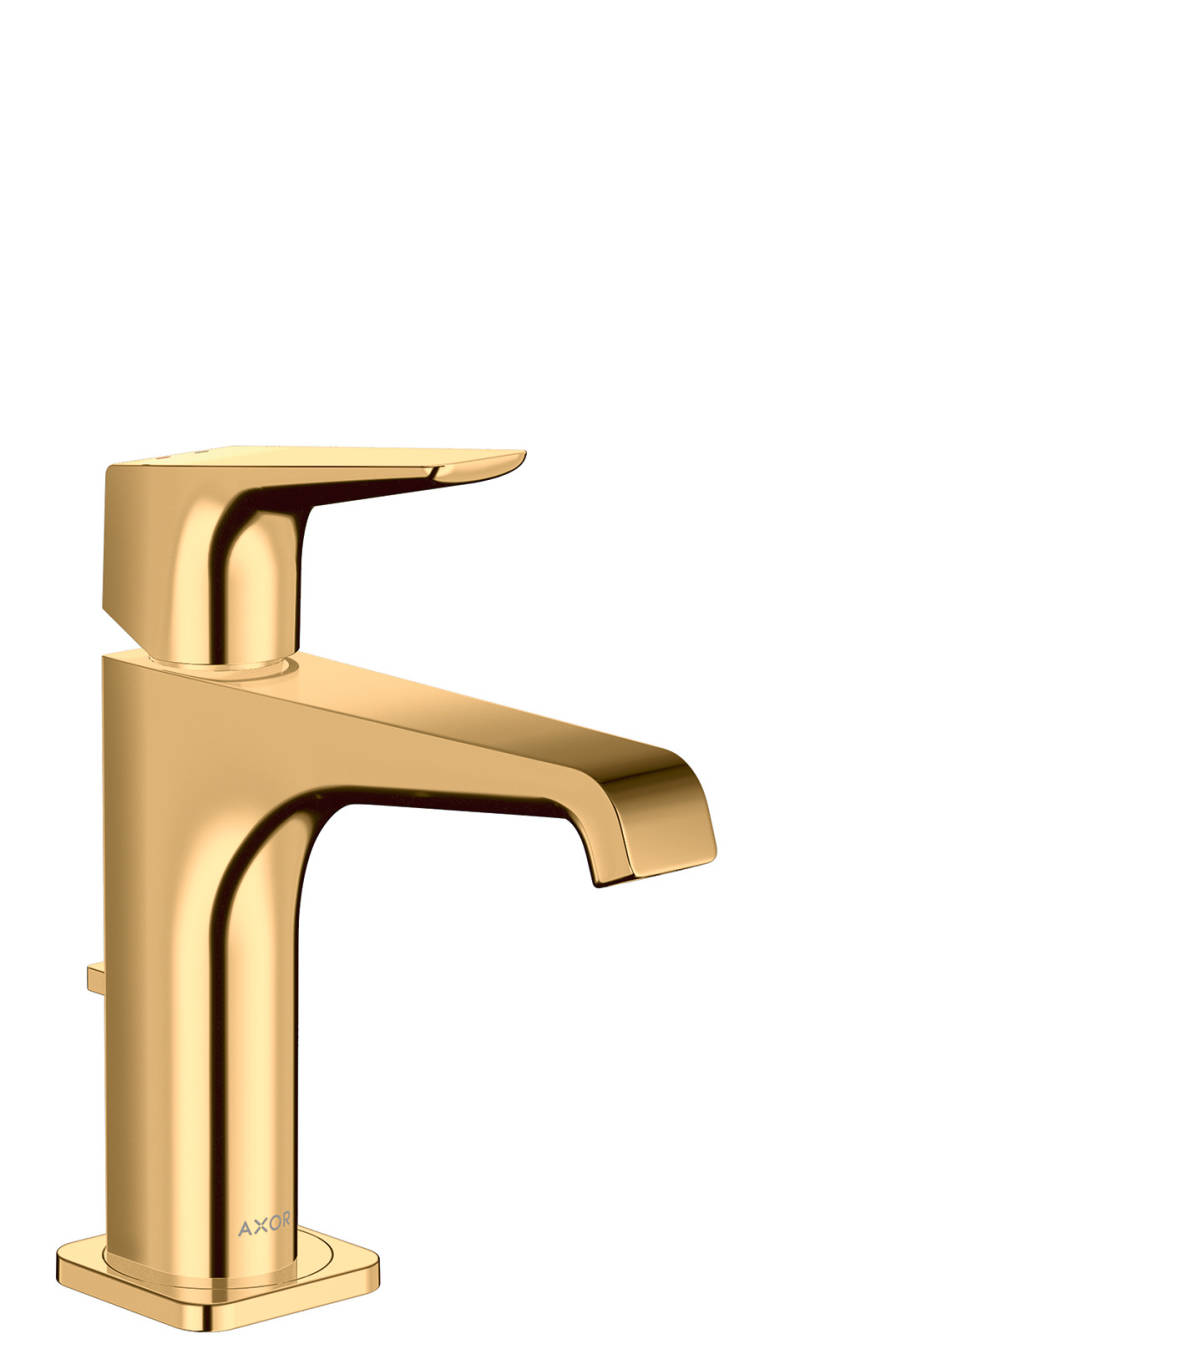 Single lever basin mixer 130 with lever handle and pop-up waste set, Polished Brass, 36110930